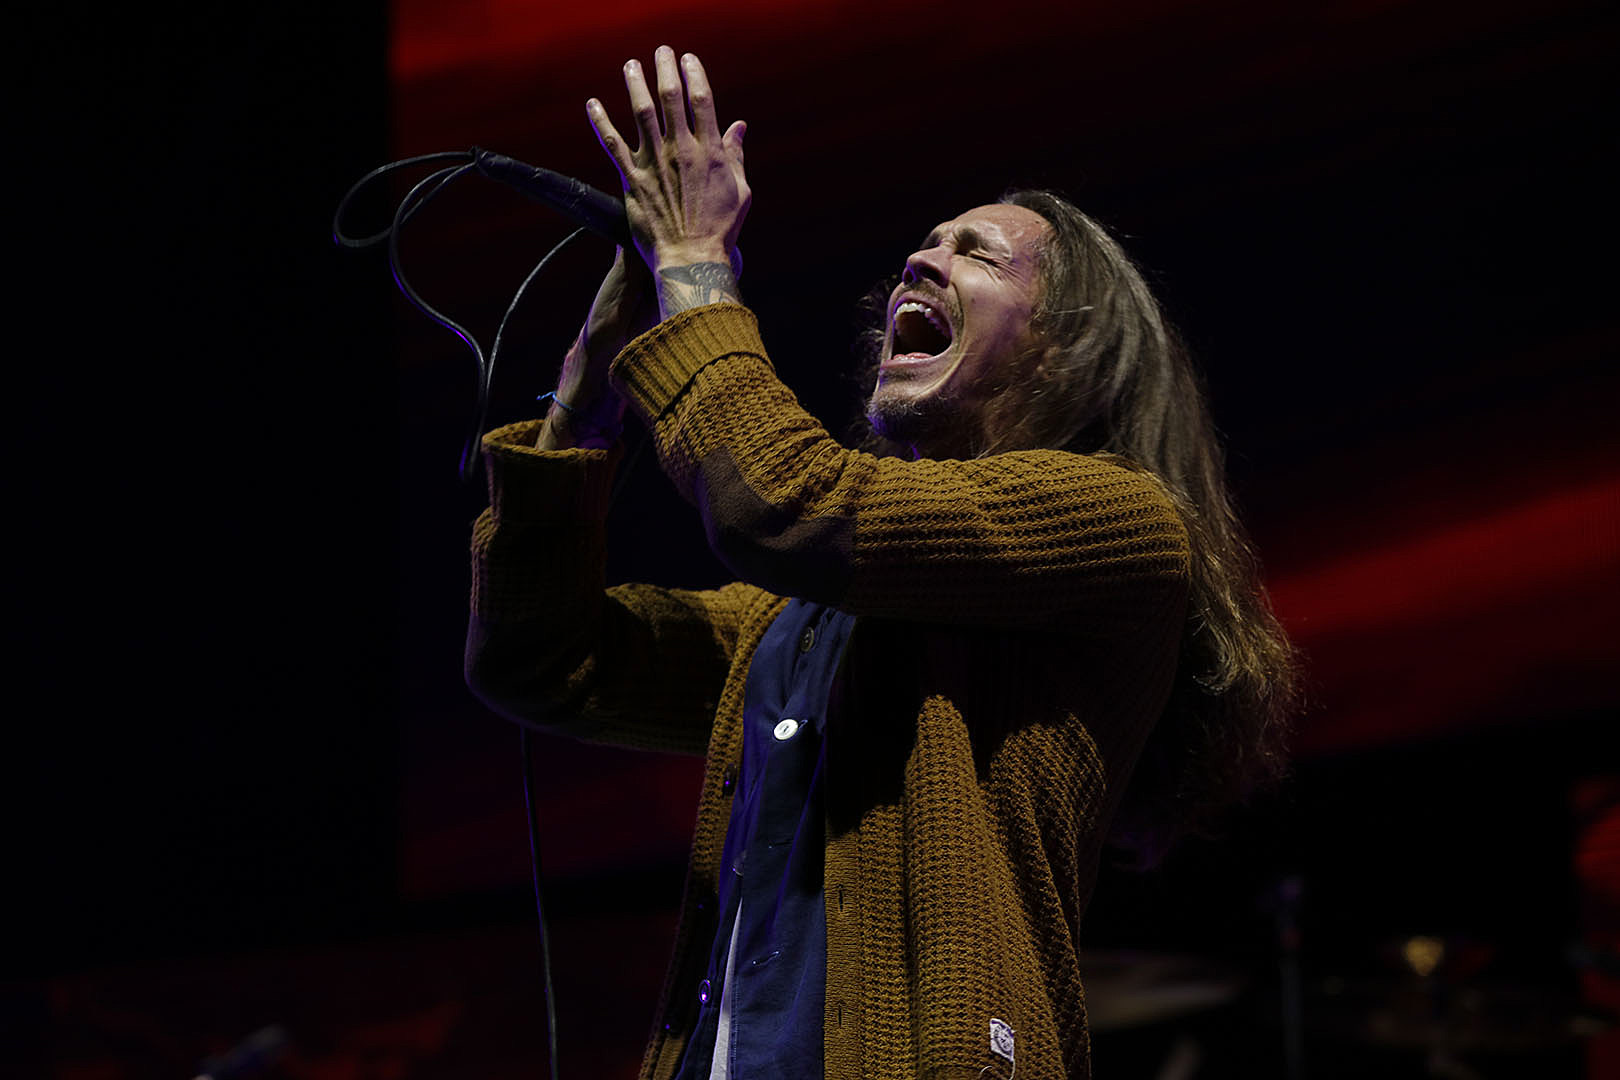 Brandon Boyd: It 'Hurt' Incubus to be Compared to 'Misogynistic' Nu Metal Bands